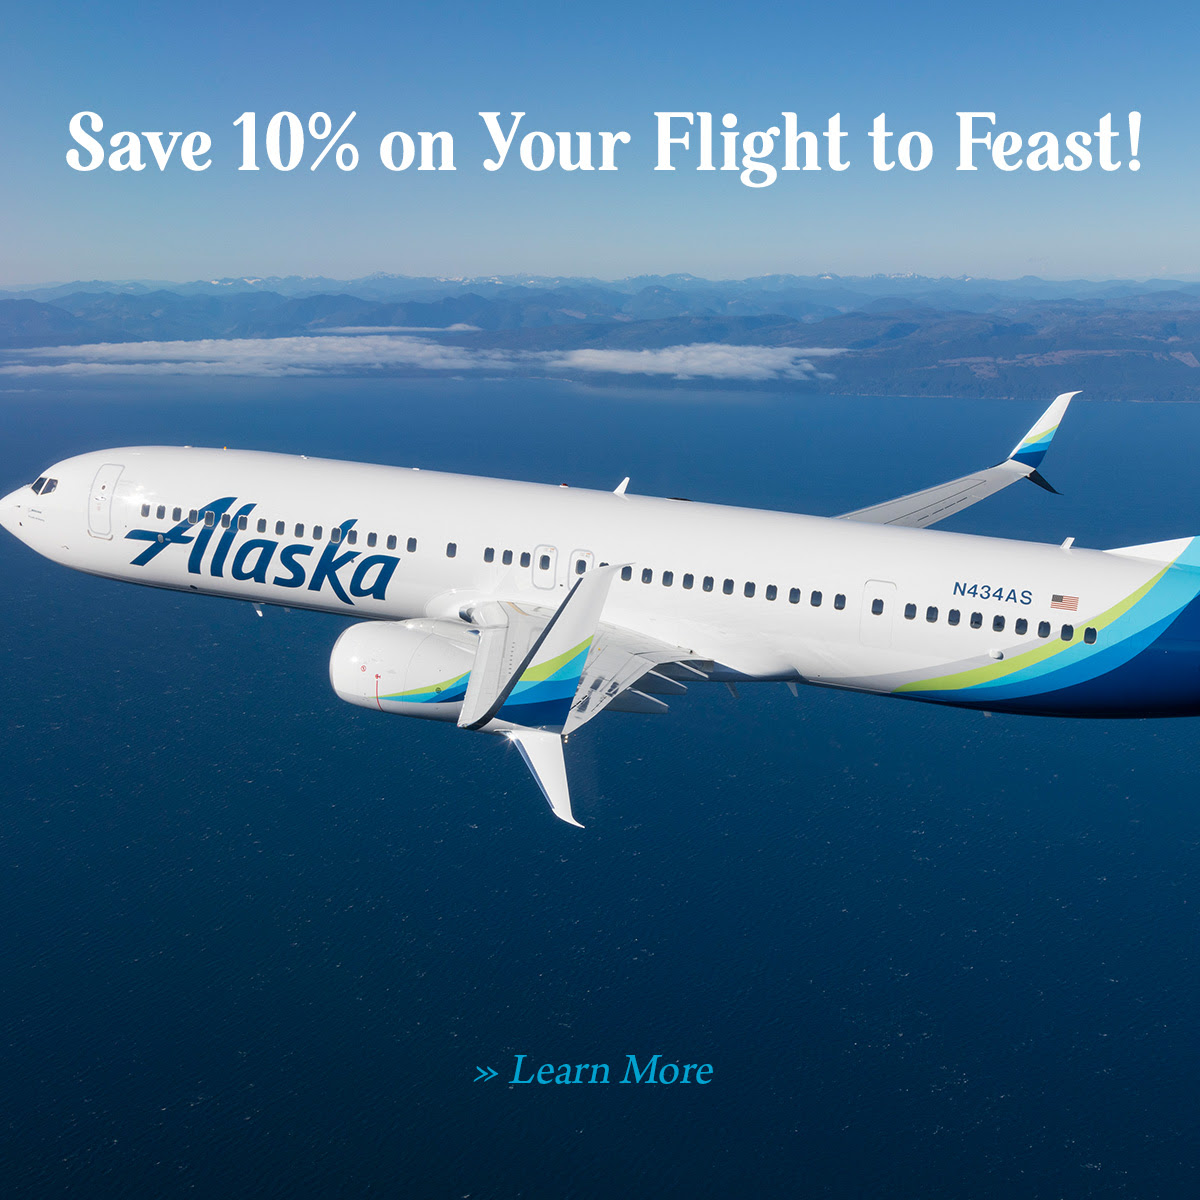 Save 10% on Your Flight to Feast